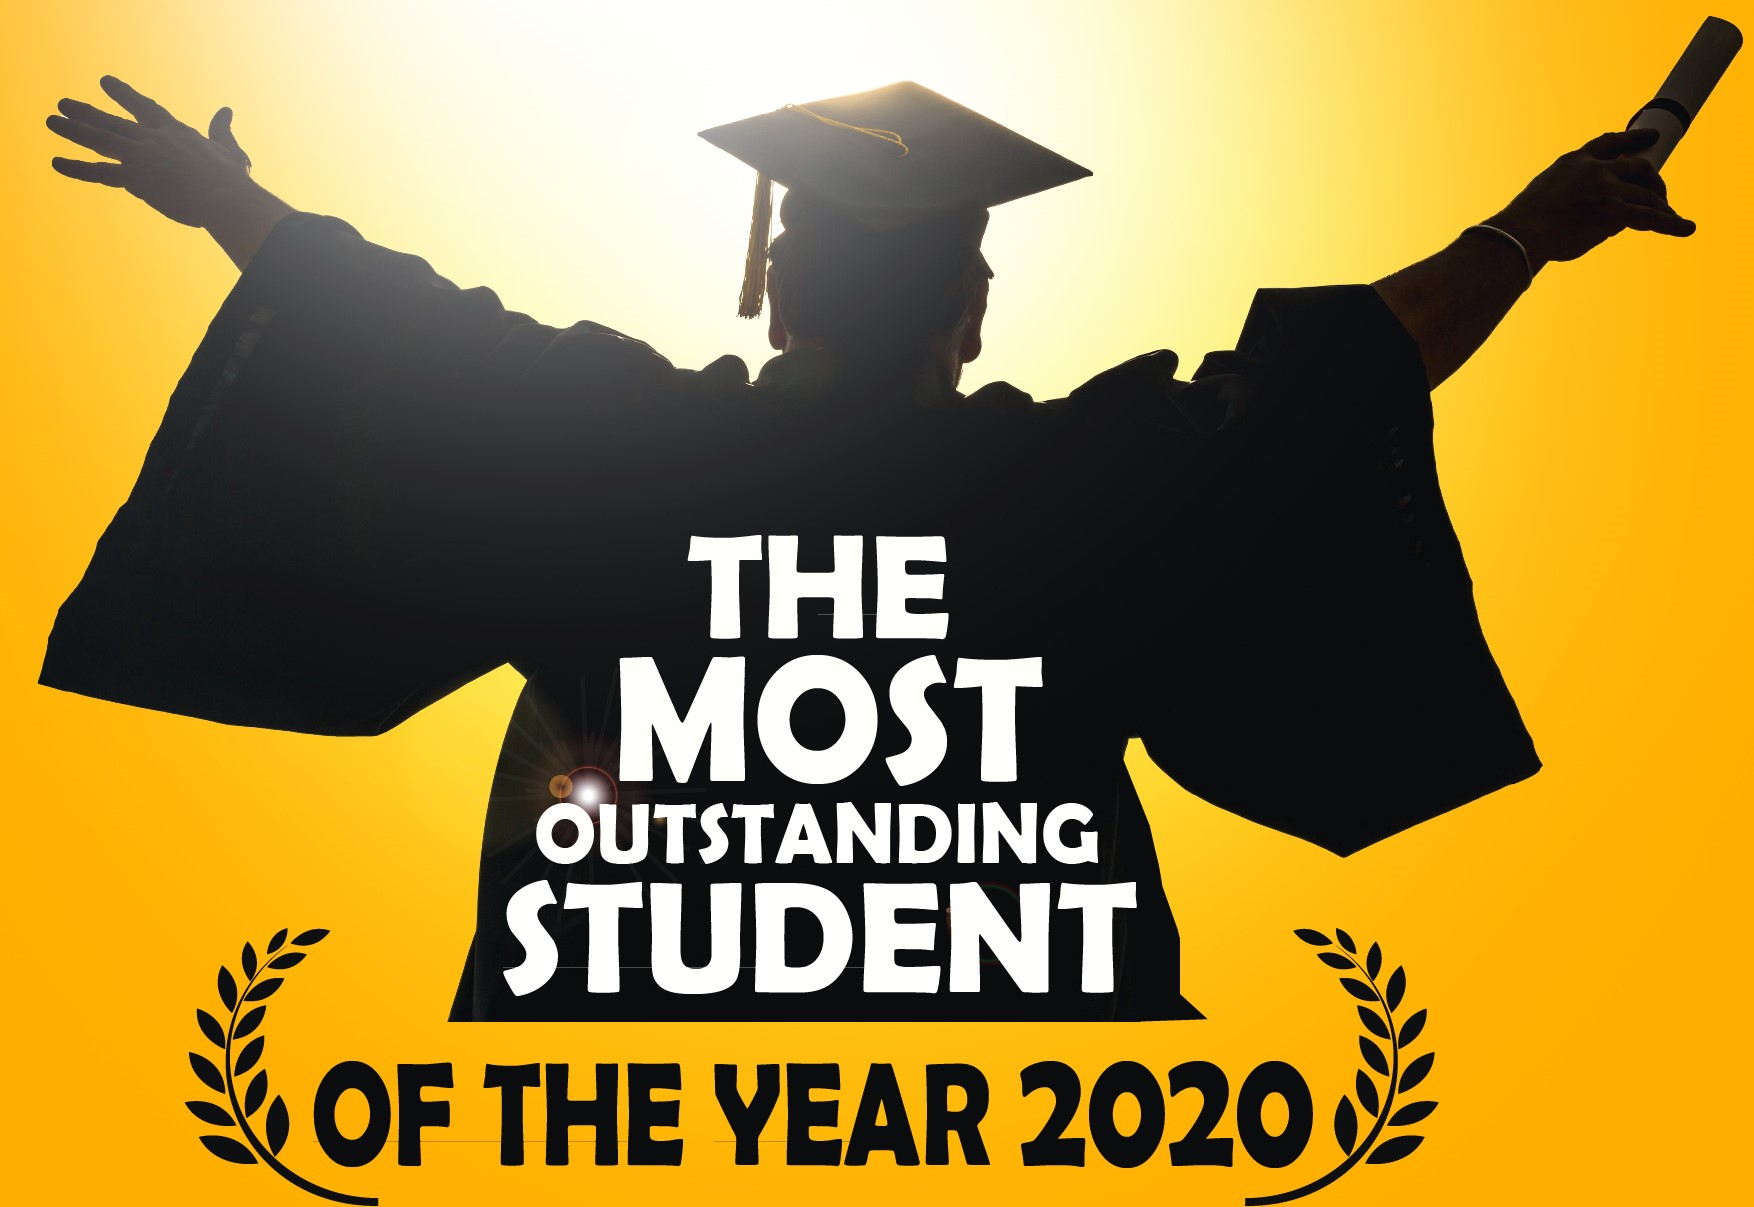 The most outstanding student of the year 2020